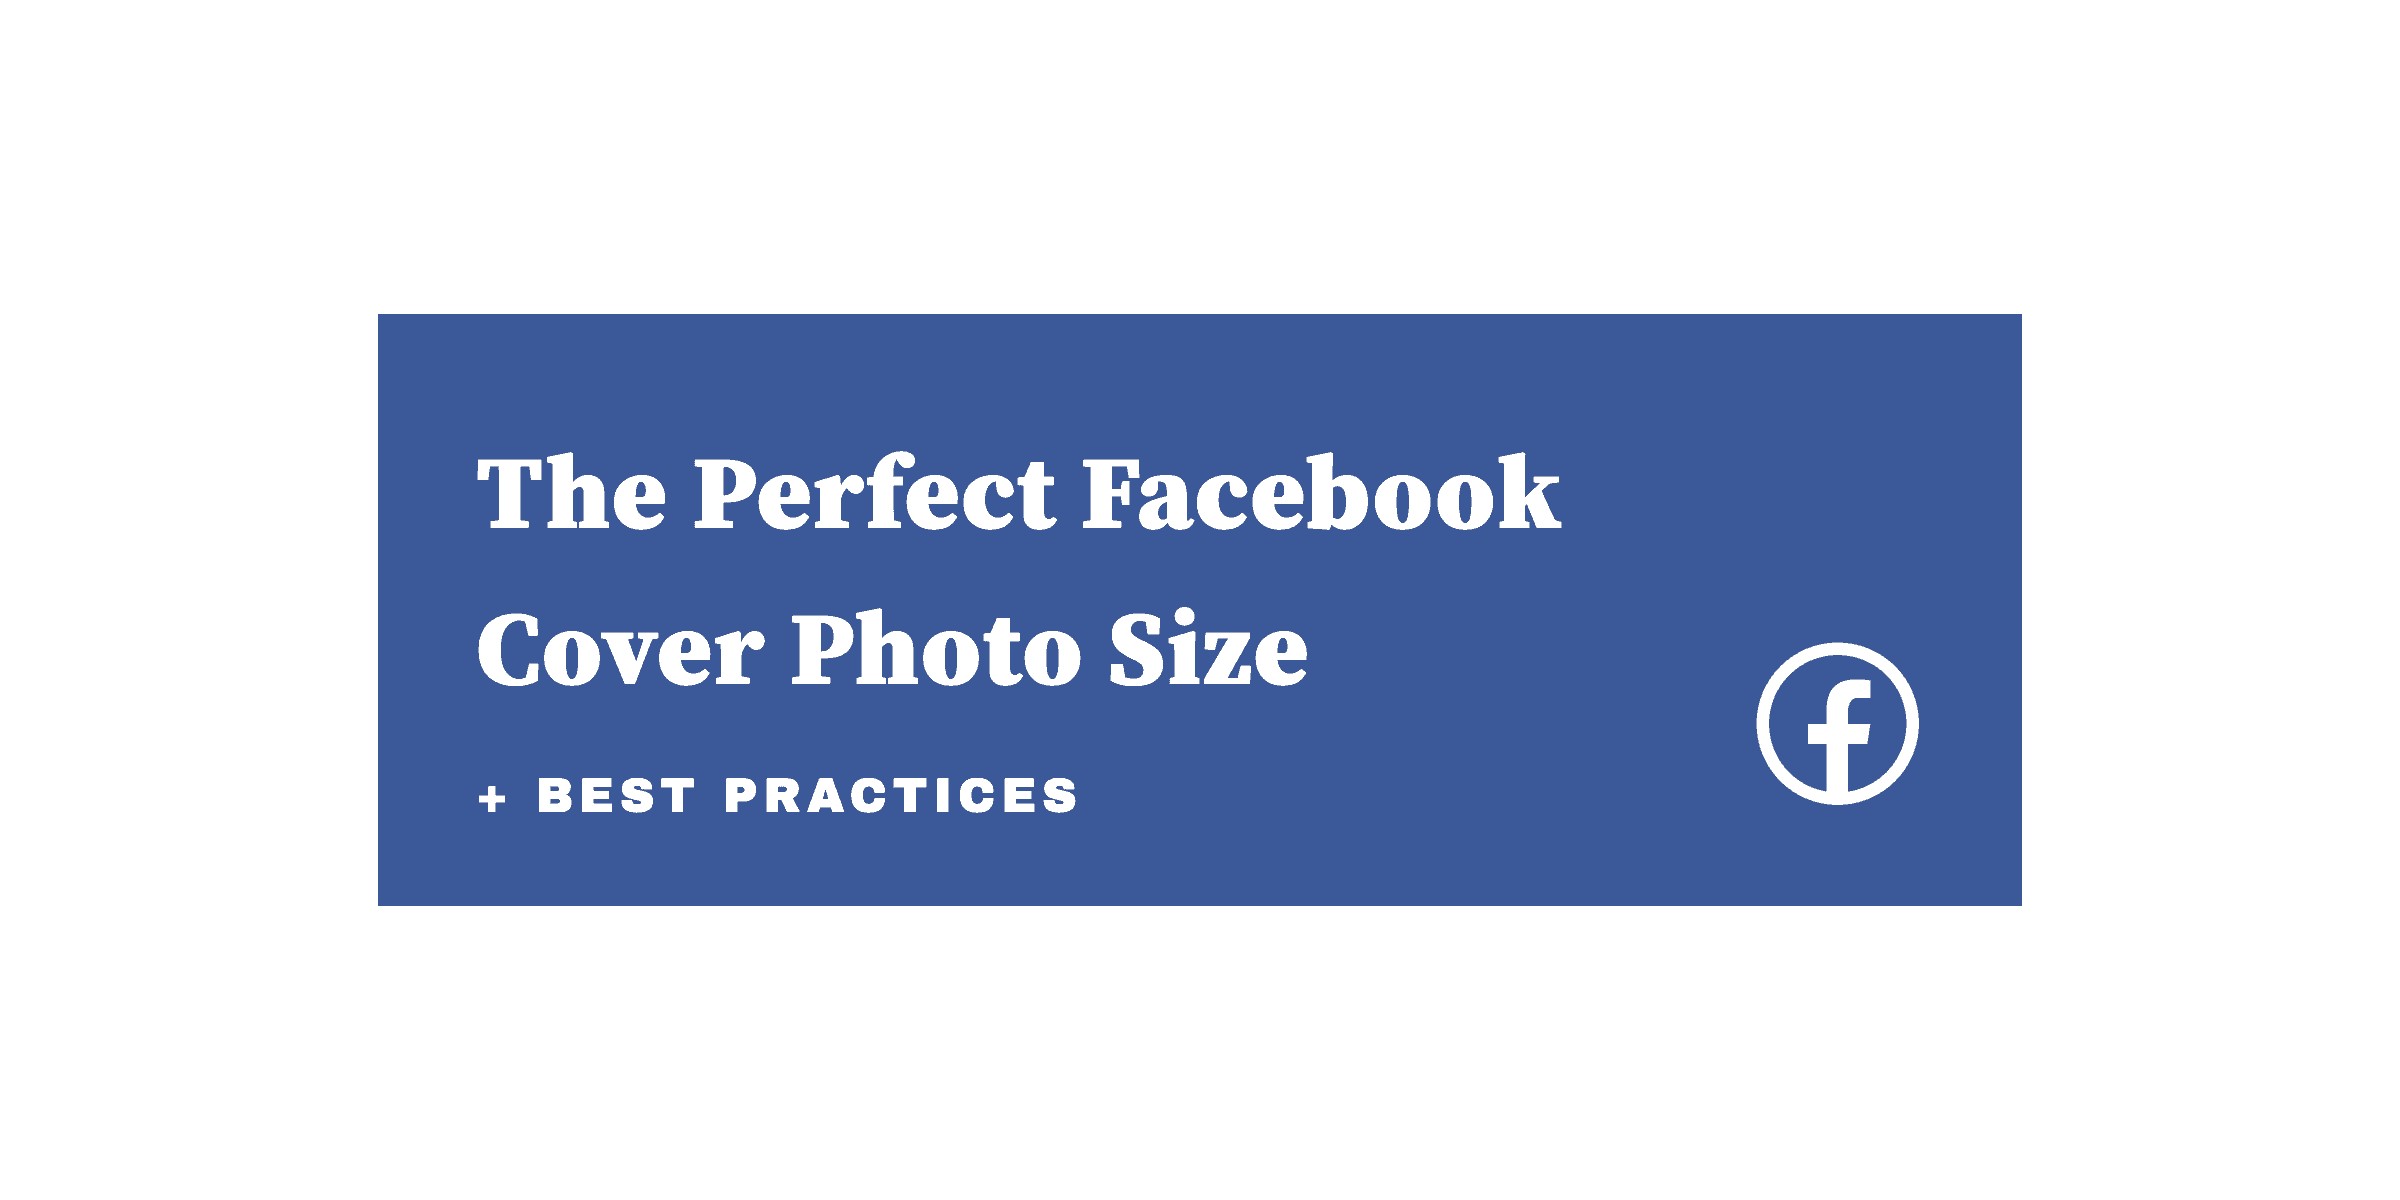 The Perfect Facebook Cover Photo Size